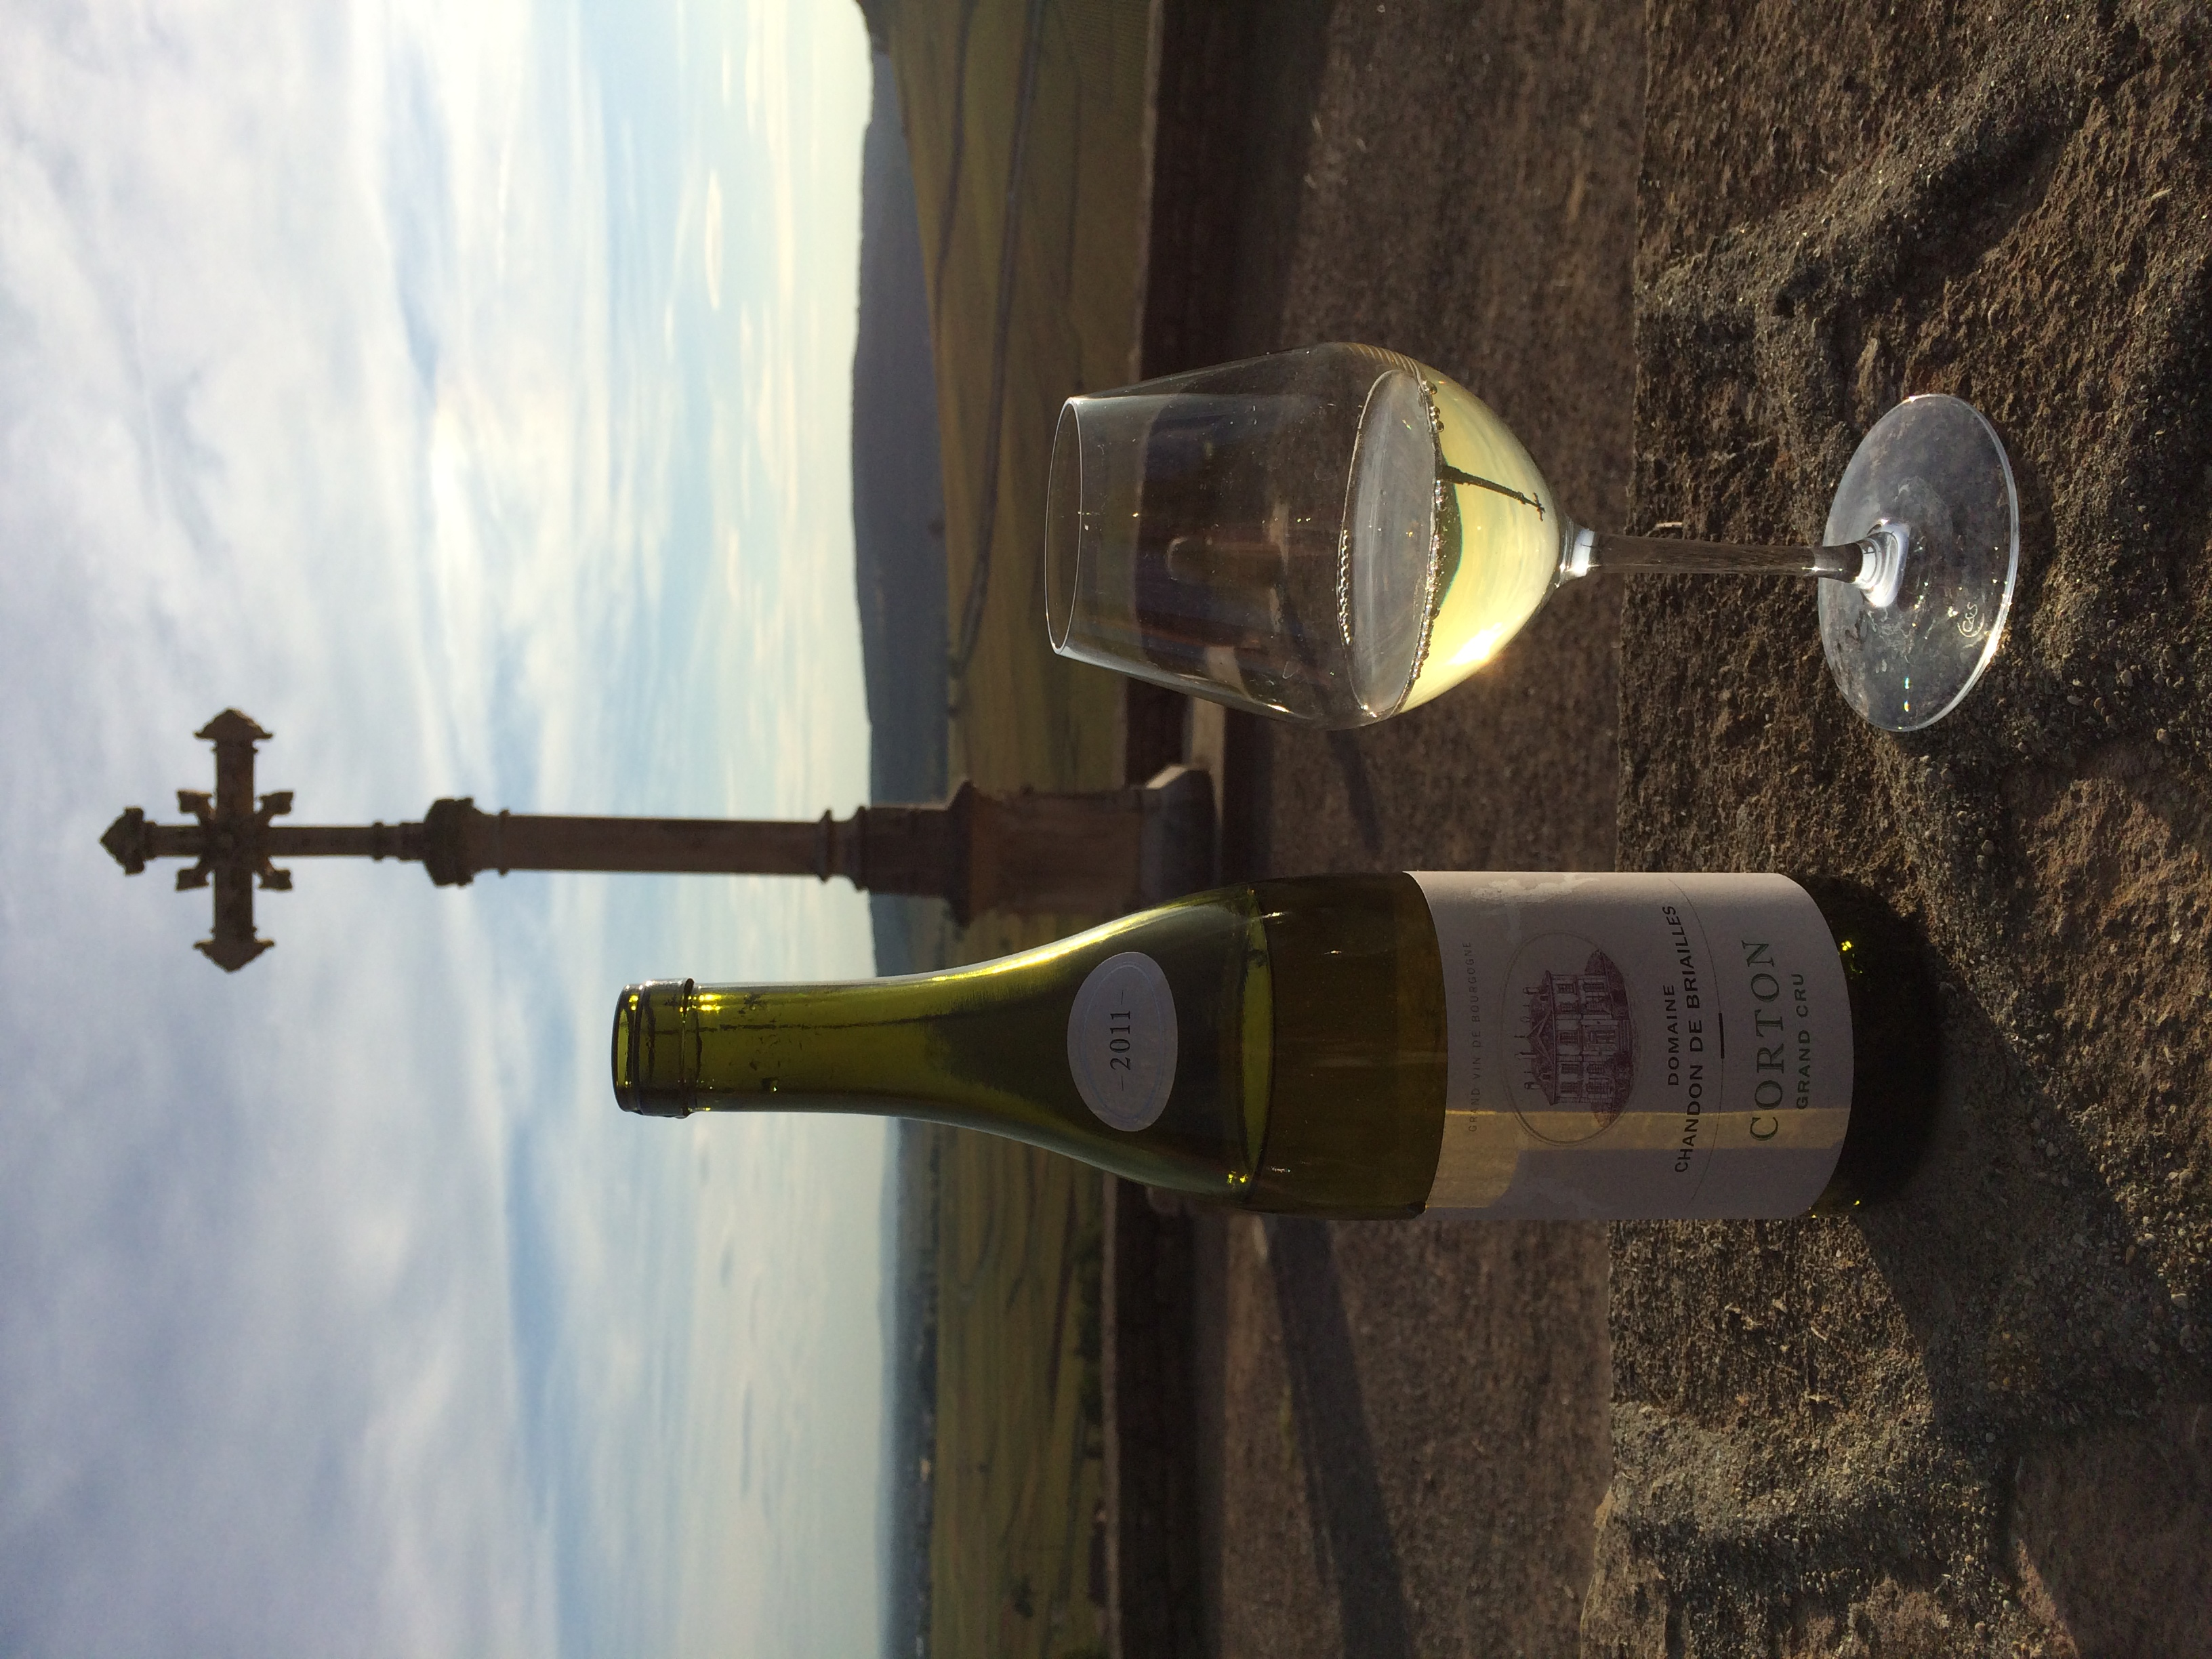 Corton is best enjoyed on the hill of Corton